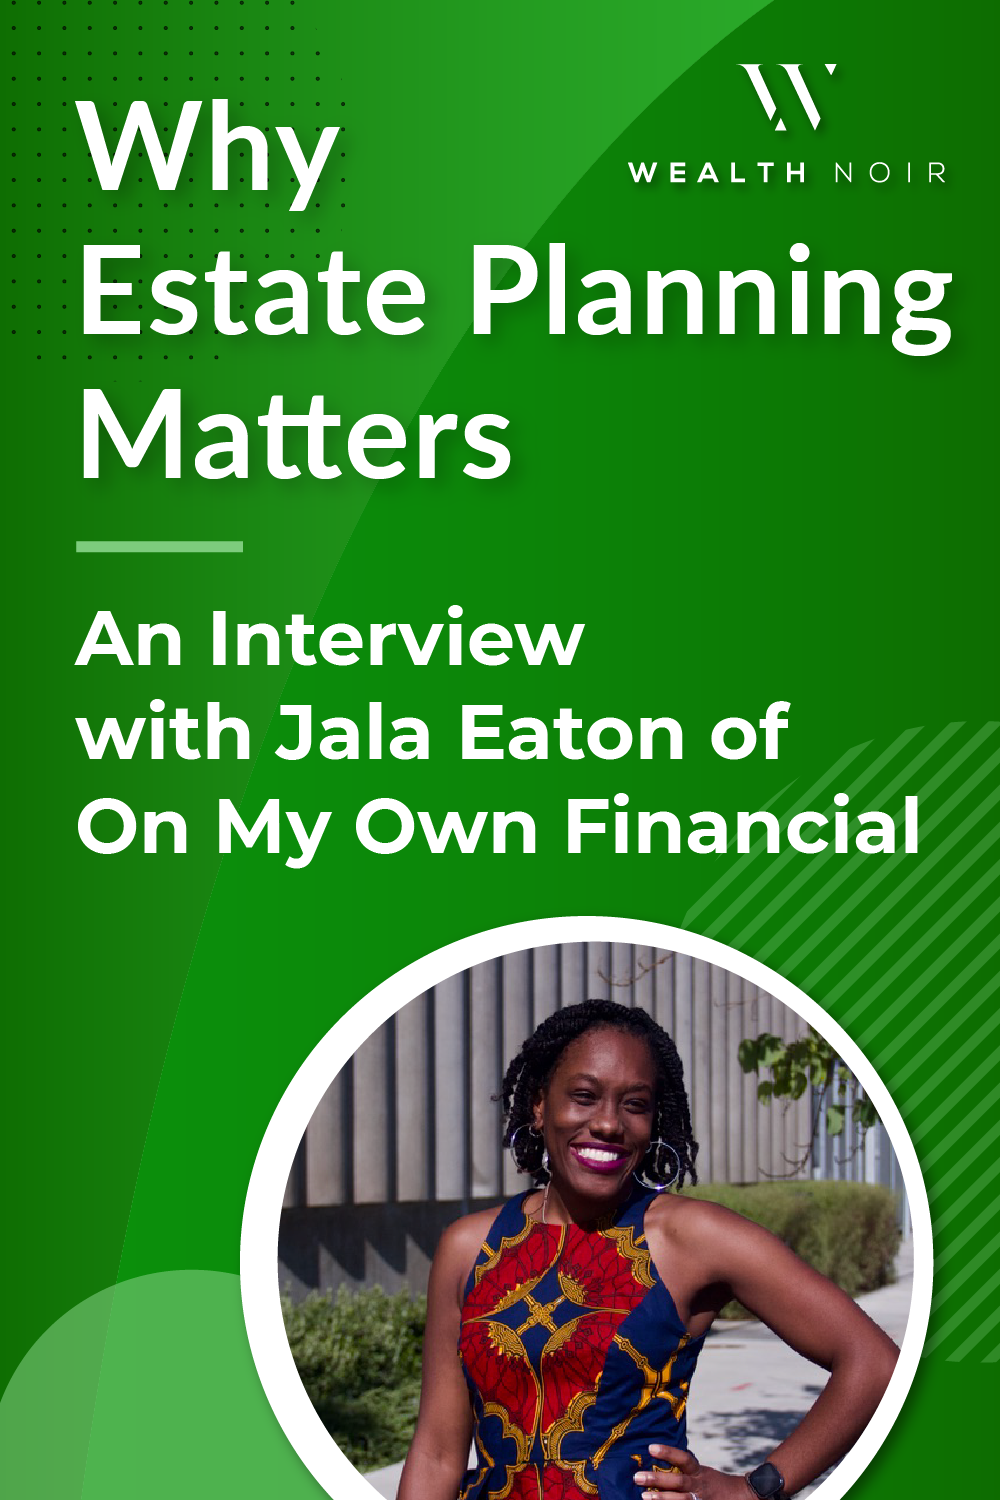 Why Estate Planning Matters: An Interview with Jala Eaton of On My Own Financial